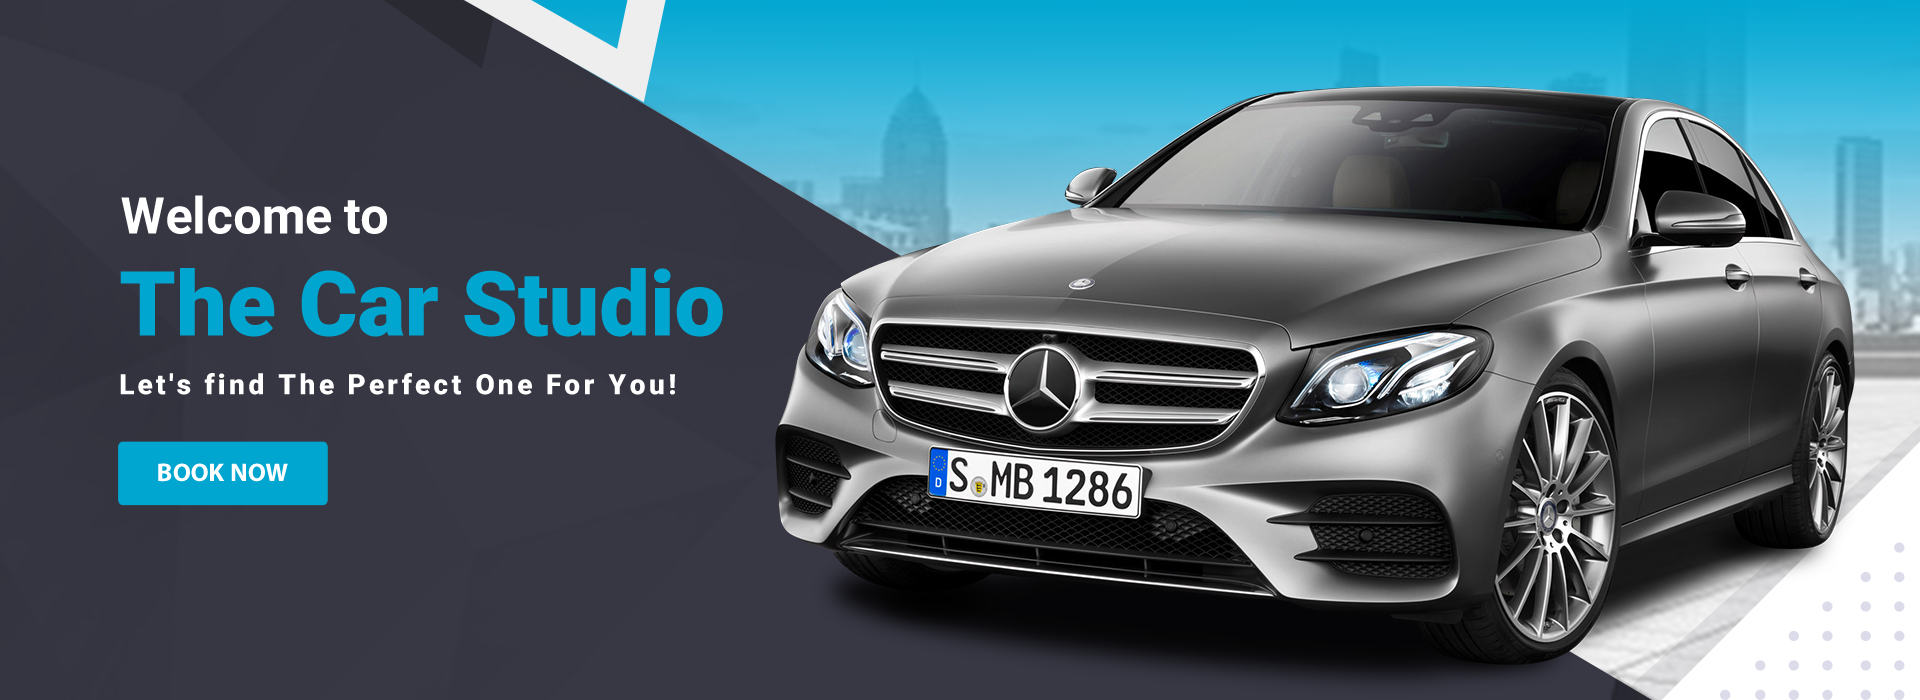 Welcome To Car Studio